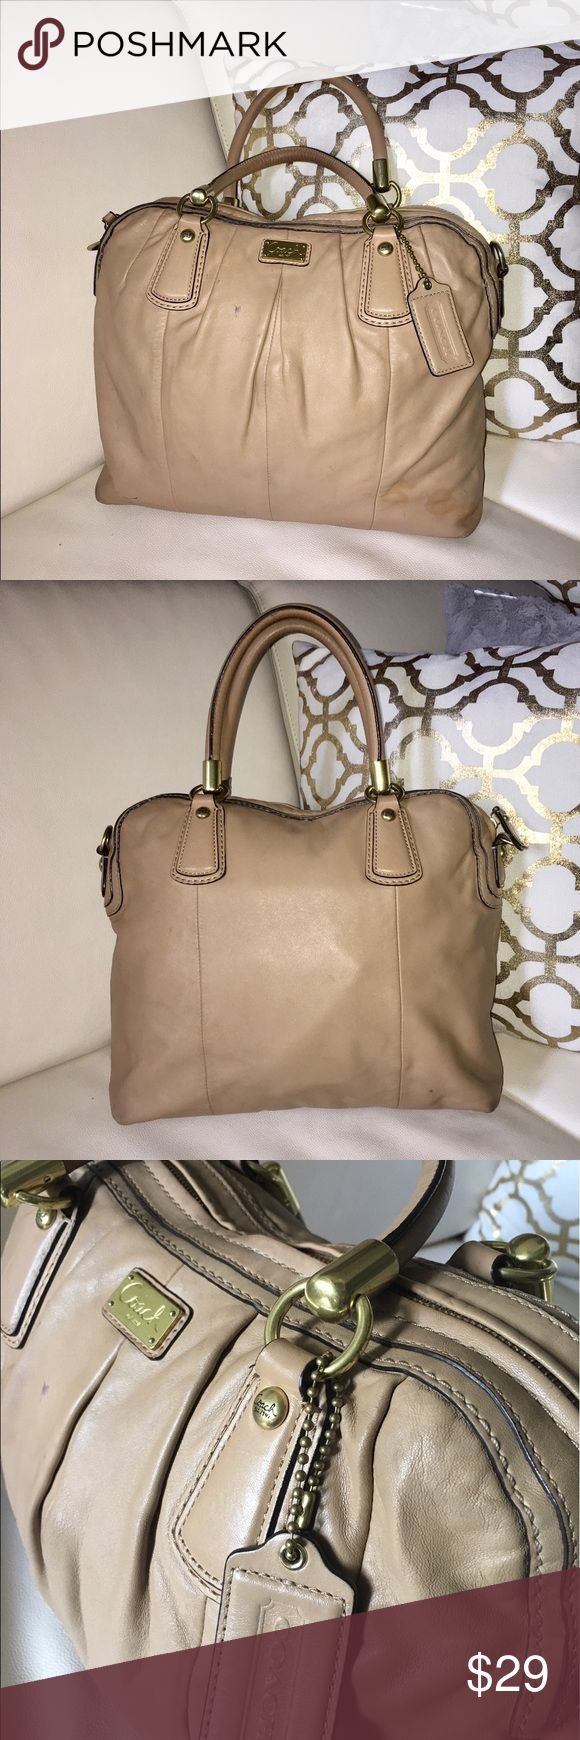 "Authentic Coach Kristin Pleated Taupe F15339 Authentic Well Love Coach satchel handbag its been used  lot signs of wear inside out stain in the bottom corners a well as pen marks THE PRICE REFLECTS THE CONDITION CHECK PICS  13""(W) x 11.5""(H) x 4.5"" (D) 016547657 Coach Bags Satchels"